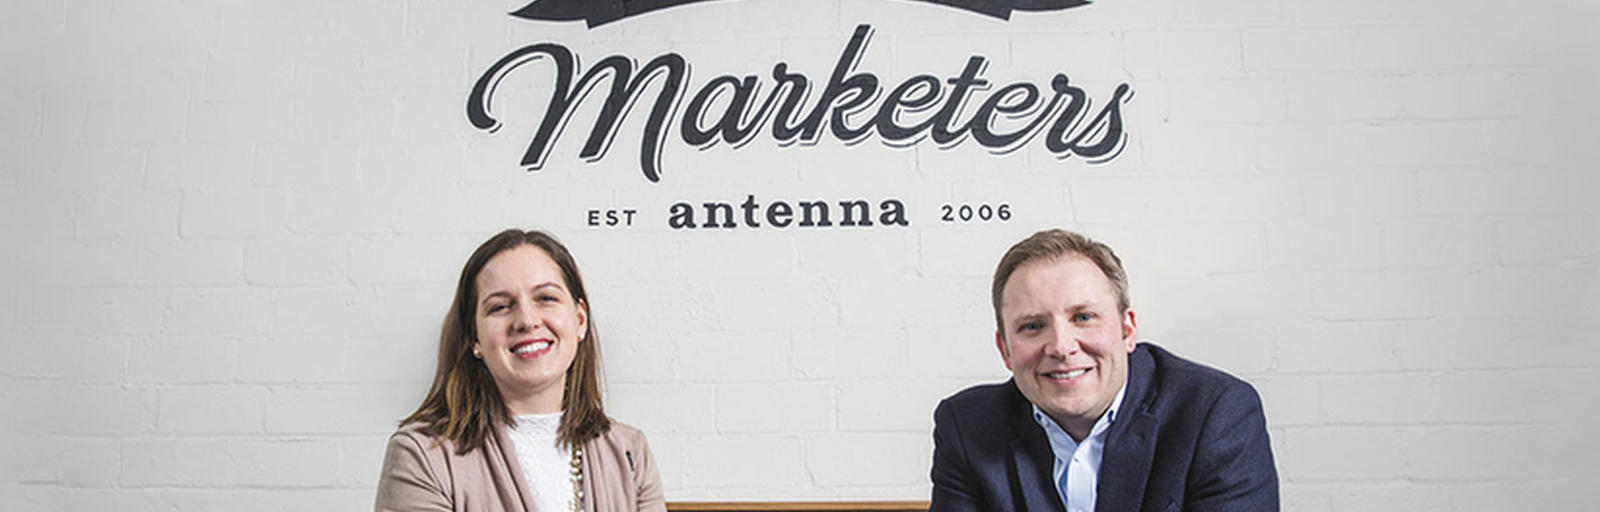 Brendon Schrader, '01 MBA, founded Antenna in 2006, while Jennifer Laible, '98 BSB, '02 MBA, joined the firm in 2012.